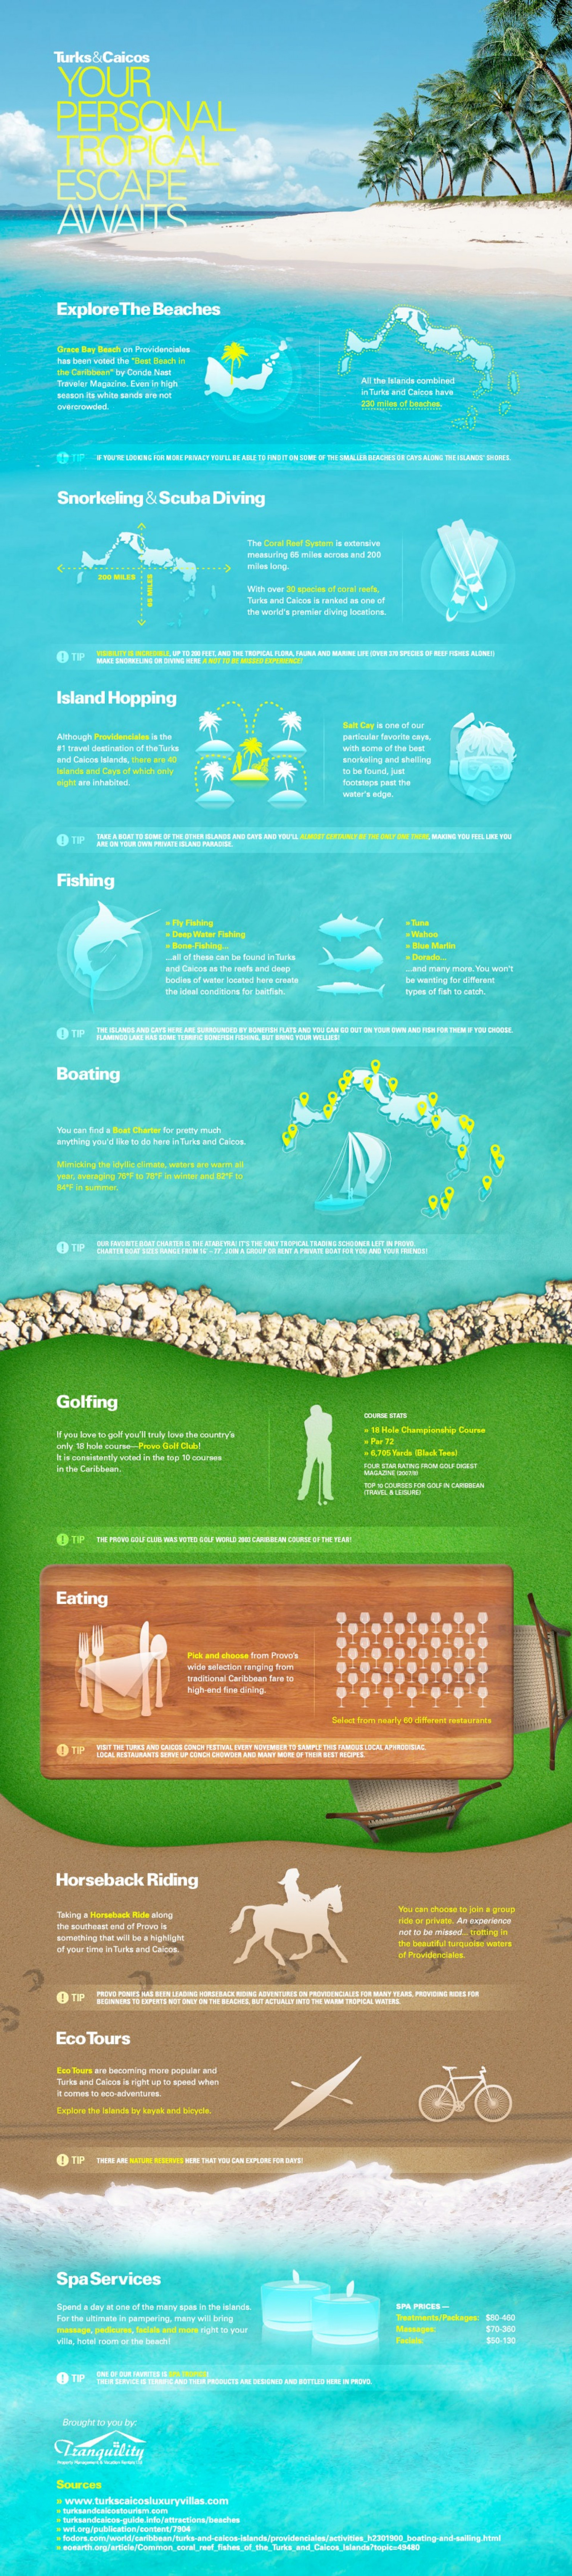 Turks & Caicos Beach Vacations Infographic